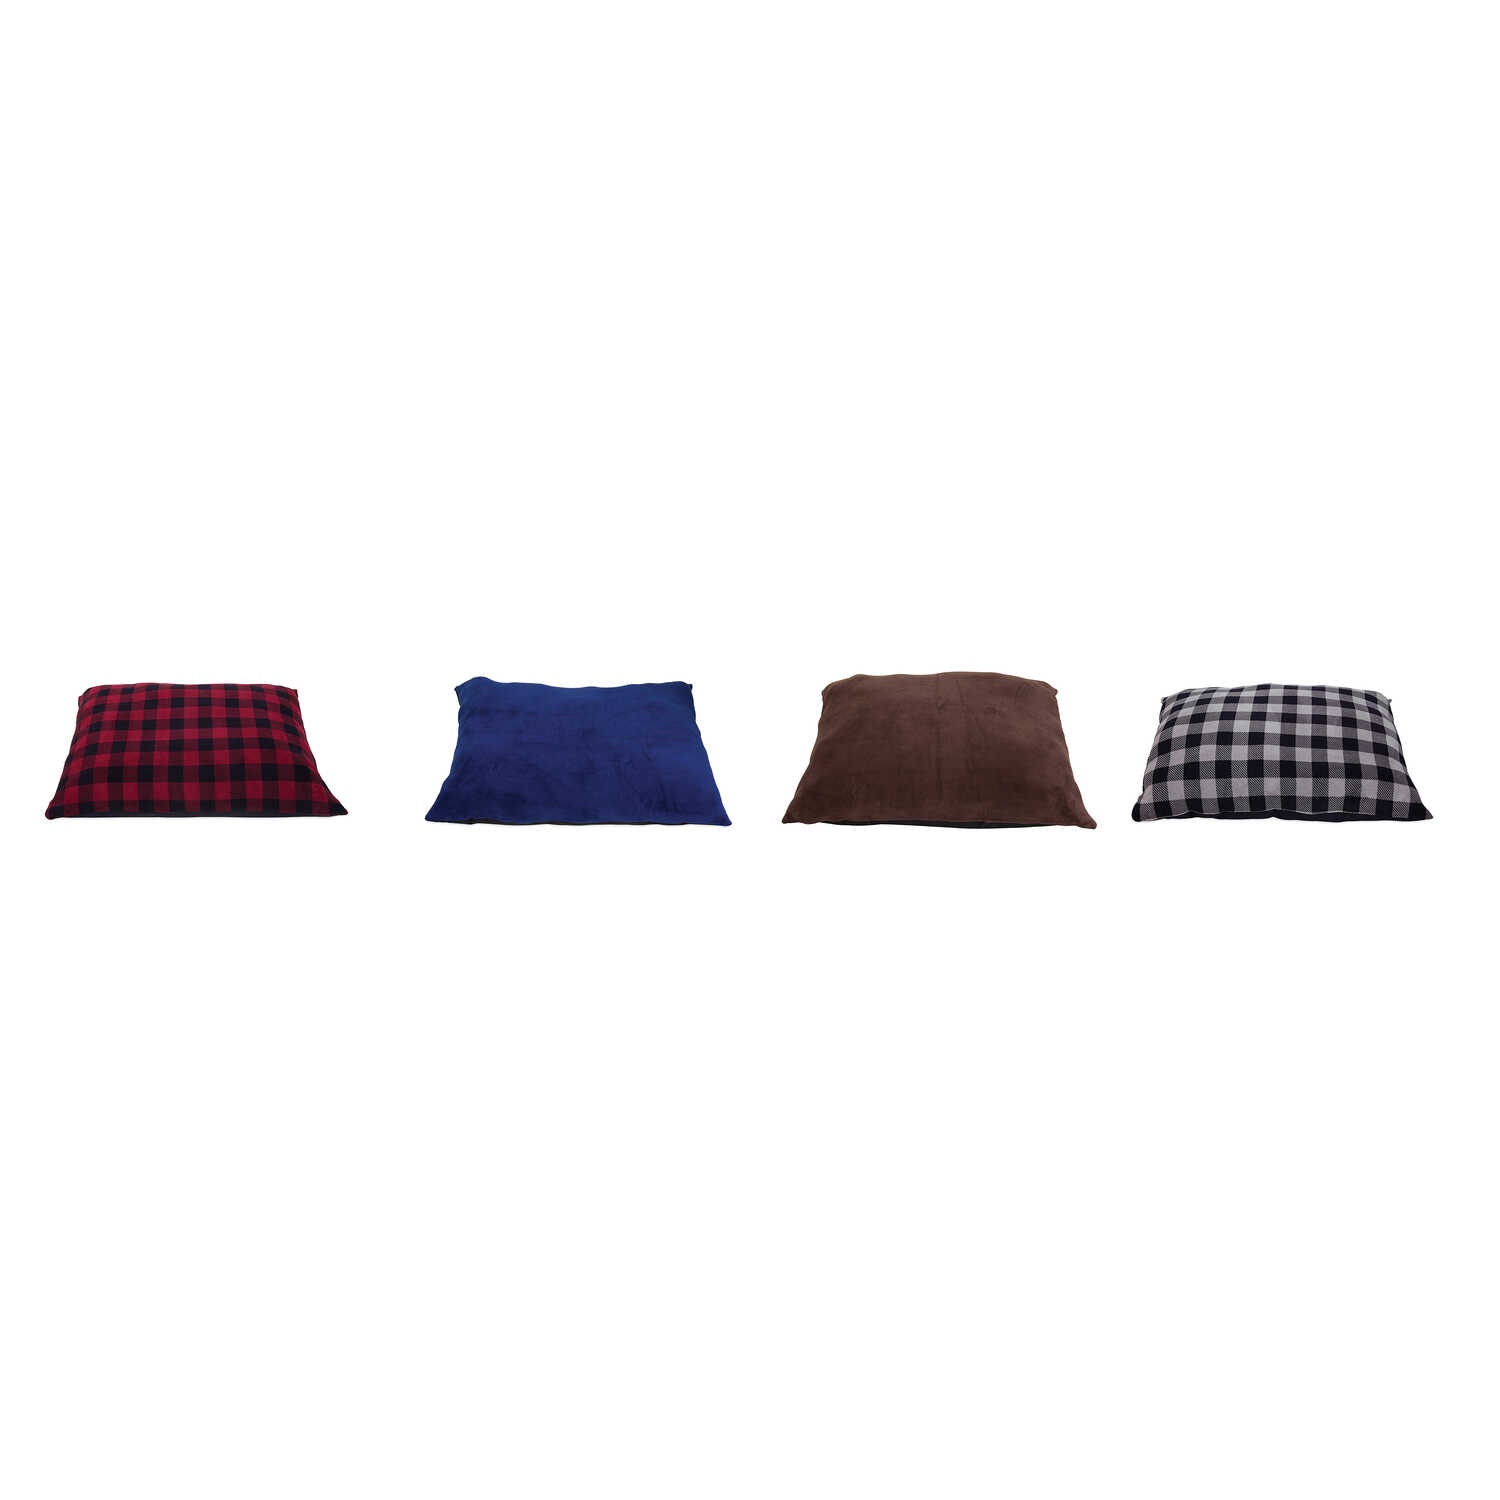 Aspen Pet  Assorted  Polyester  Rectangle  Pet Bed  6 in. H x 40 in. W x 29 in. L